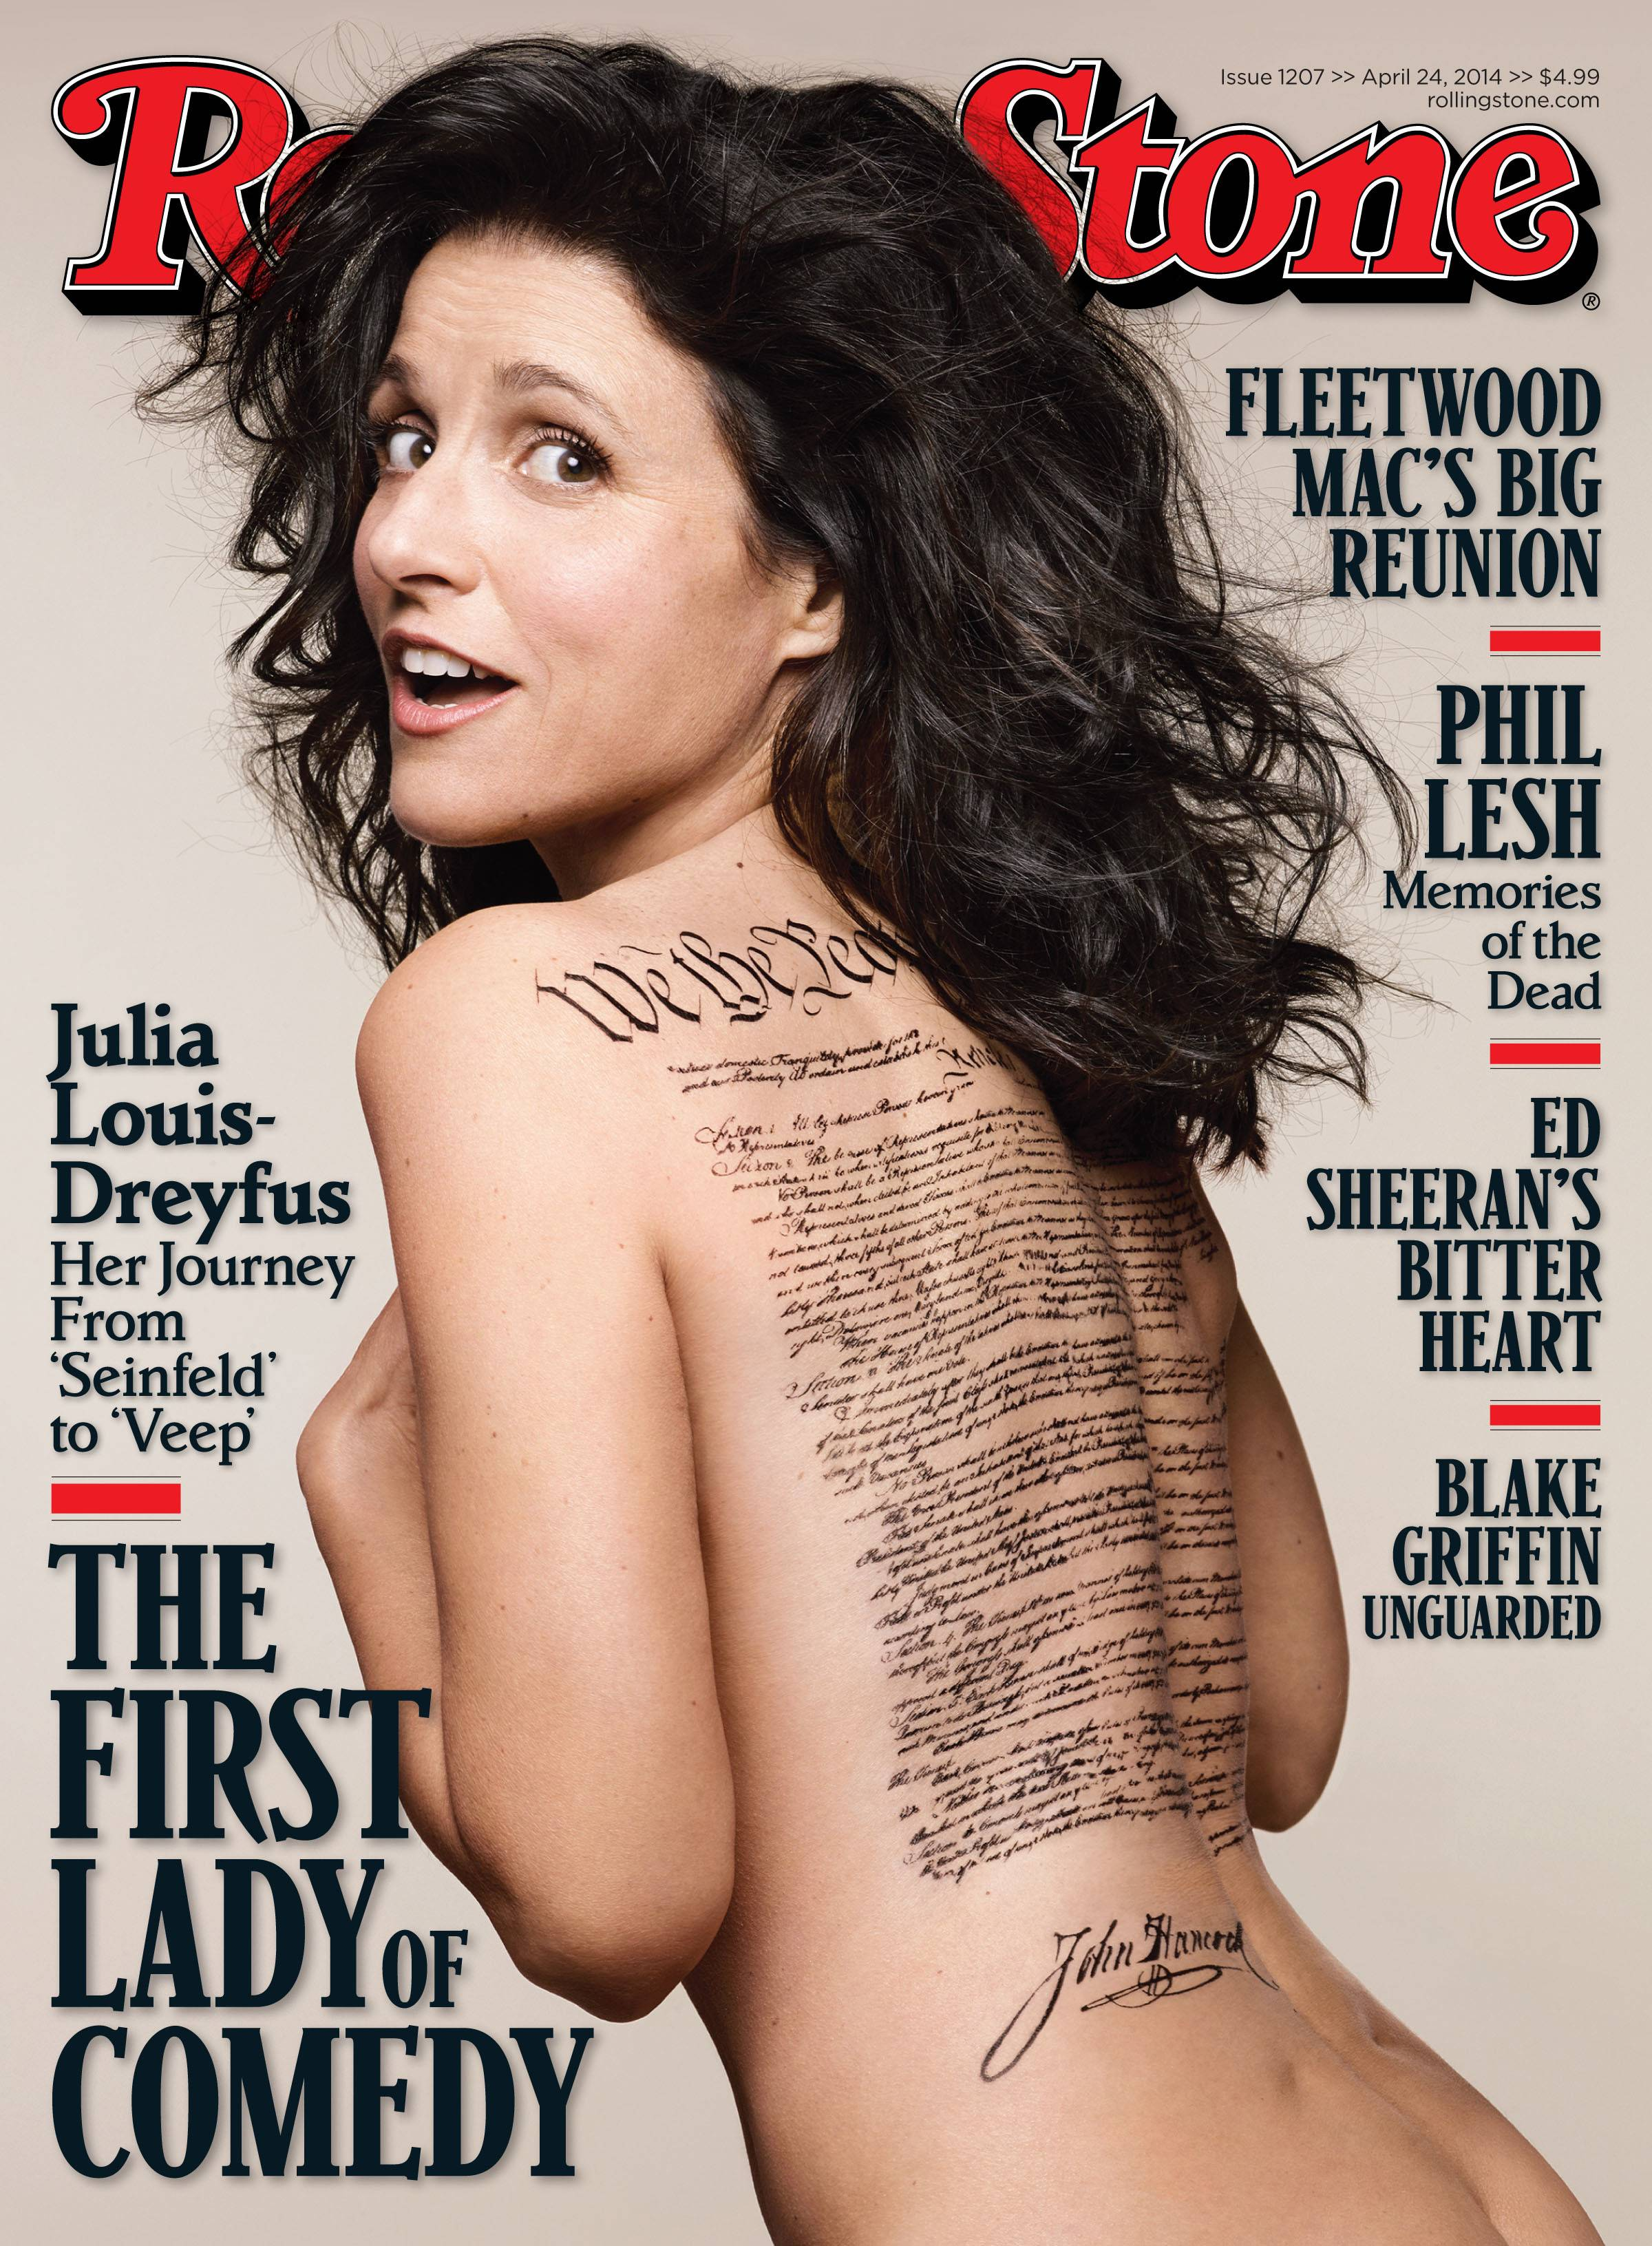 "Rolling Stone's cover features ""Veep"" star Julia Louis-Dreyfus nude with a tattoo of the U.S. Constitution signed by John Hancock across her bare back. The problem is Hancock signed the Declaration of Independence, not the Constitution."